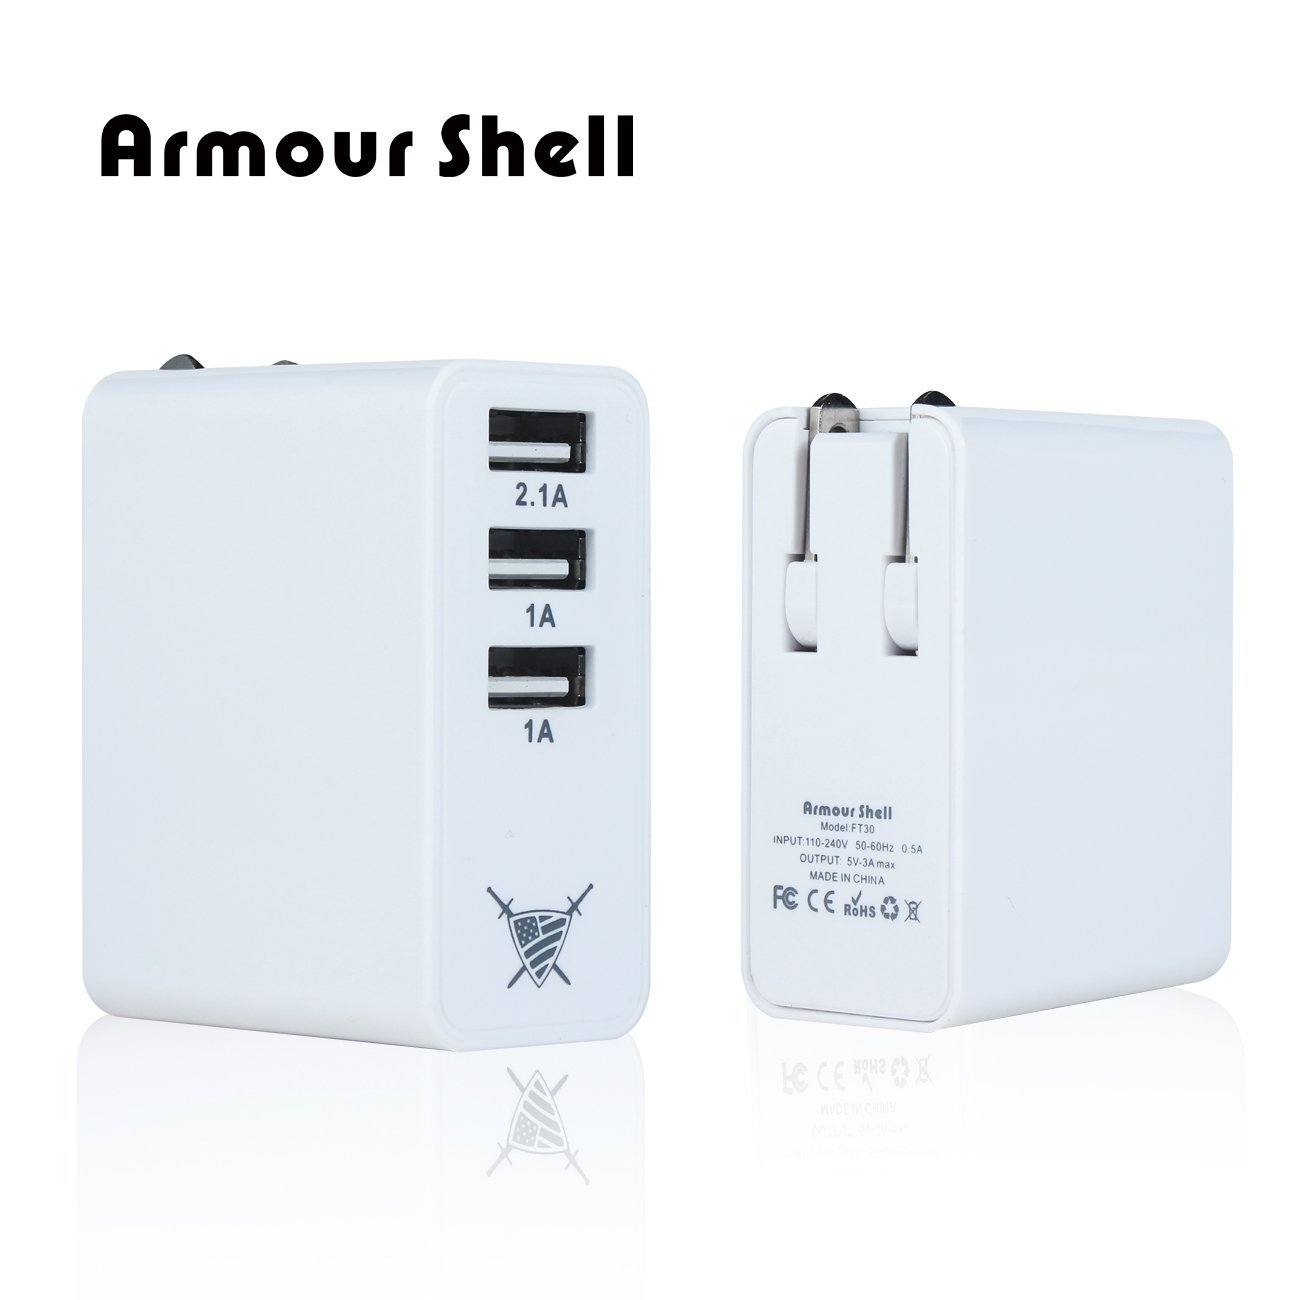 3 Port Micro USB Wall Charger, 2.1 Amp 5v Multi Charging Dock, FREE Dual Car Adapter, Power Cord, Phone Kickstand & Lens Cleaner Included! Travel Size Fits Apple iPhone 5, 6, 7, iPad, Kindle, etc.